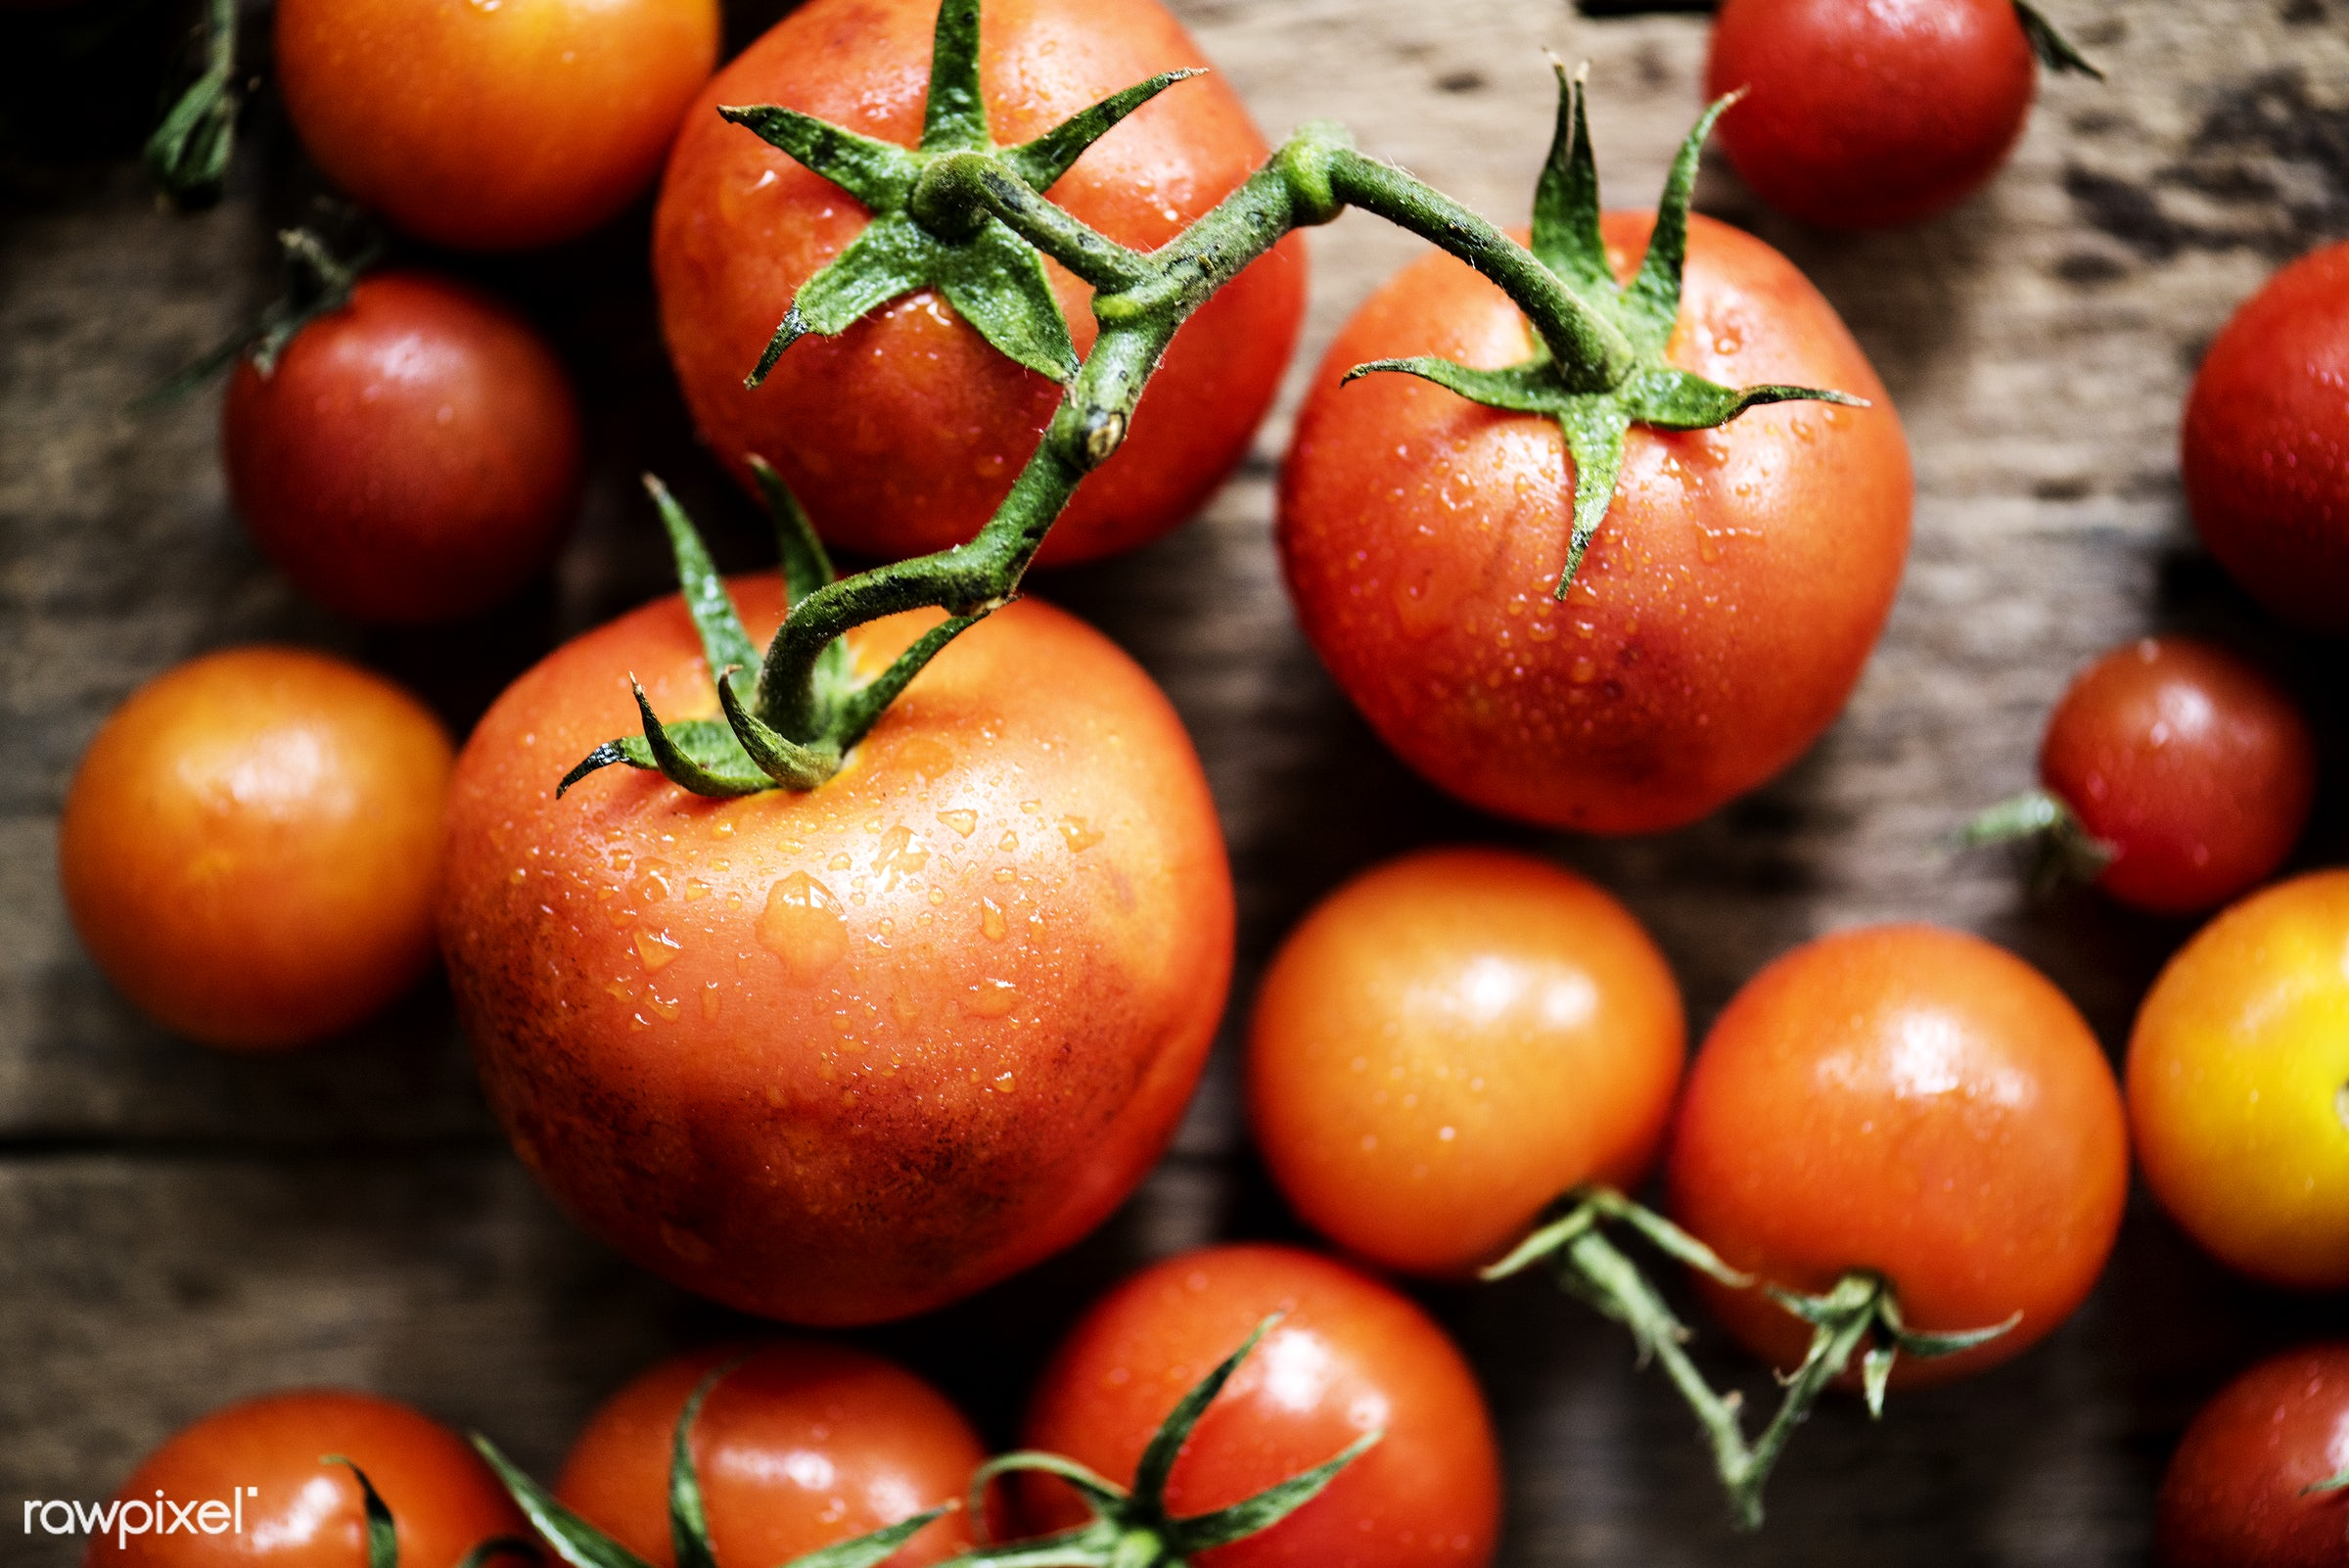 raw, nobody, farm, real, nature, fresh, products, closeup, agriculture, tomatoes, organic, food, healthy, harvest, vegetable...